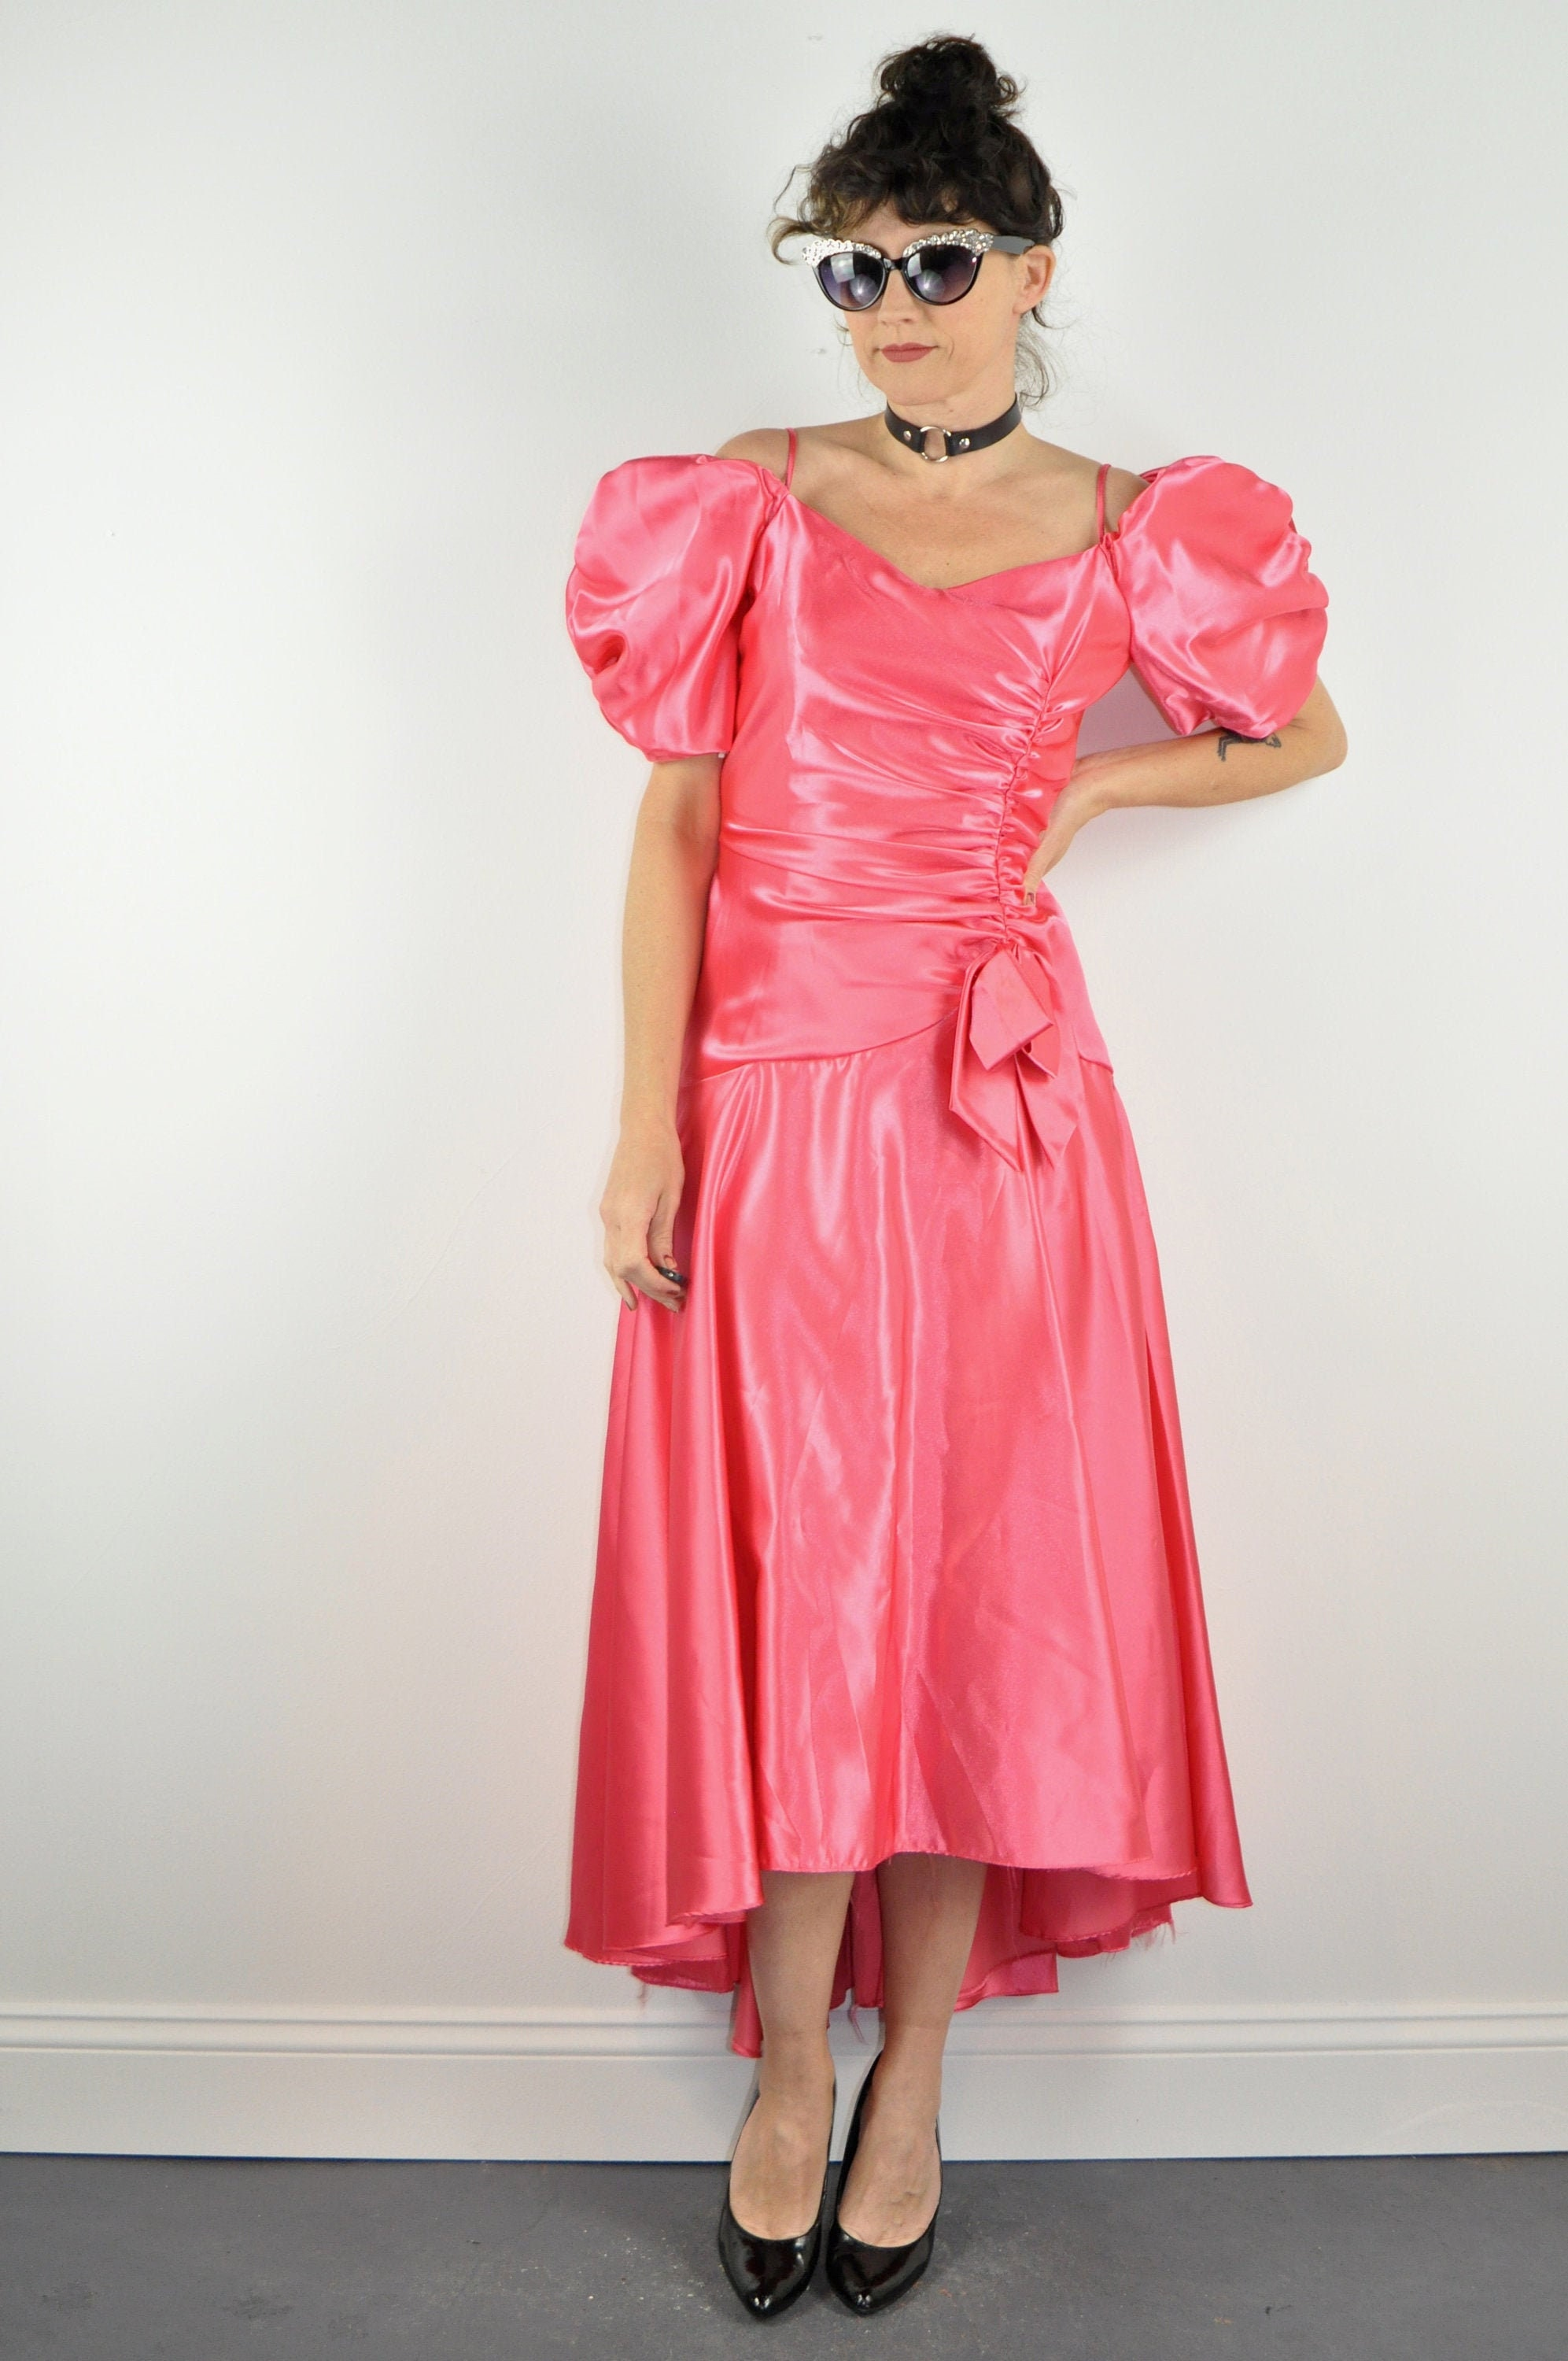 80s Dresses | Casual to Party Dresses 80S Pink Satin Prom Dress - Medium  Puff Sleeve Vintage Party Drop Waist 1980S $0.00 AT vintagedancer.com